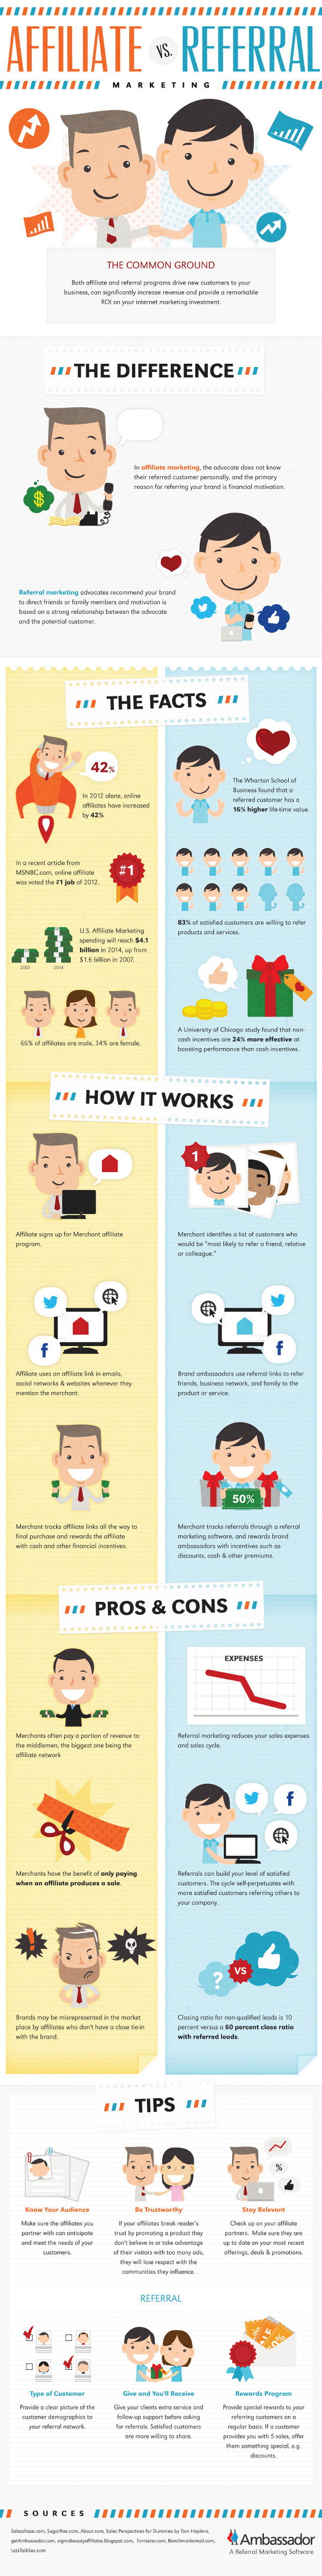 2 Infografiken zum Thema: Affiliate vs Referral Marketing